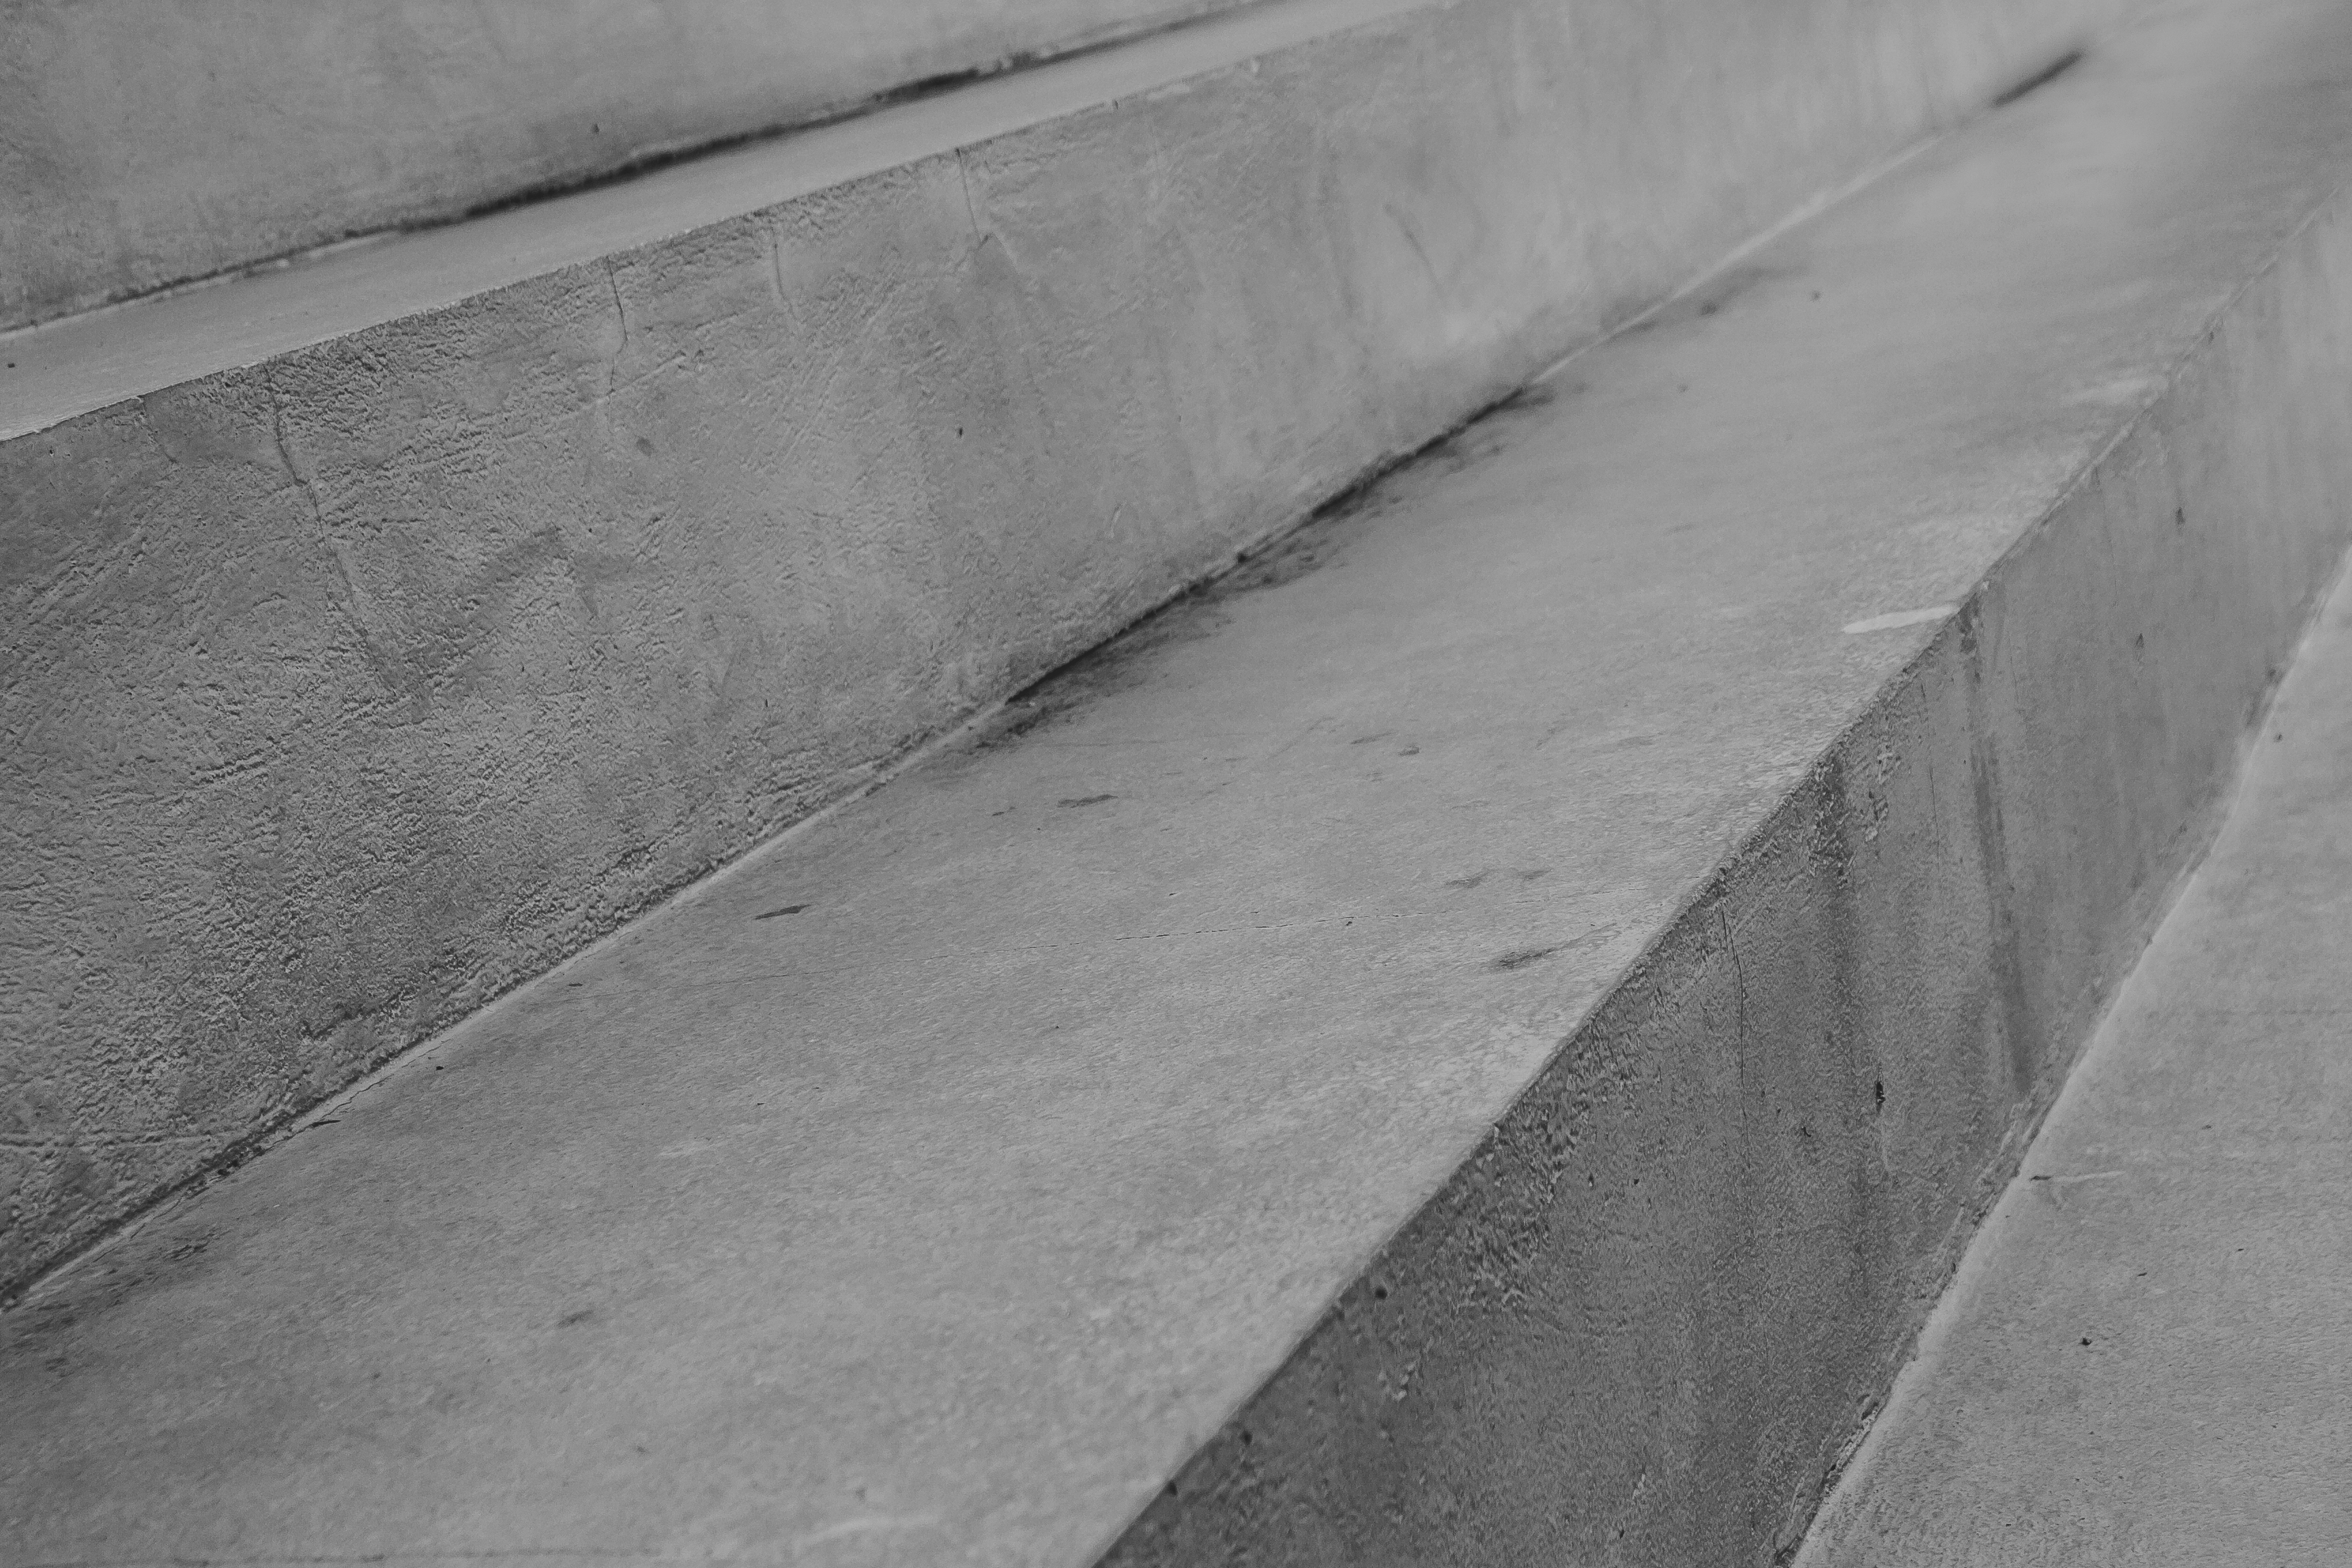 Abstract Black And White Image Of Steps Of Stone Or Concrete Sta